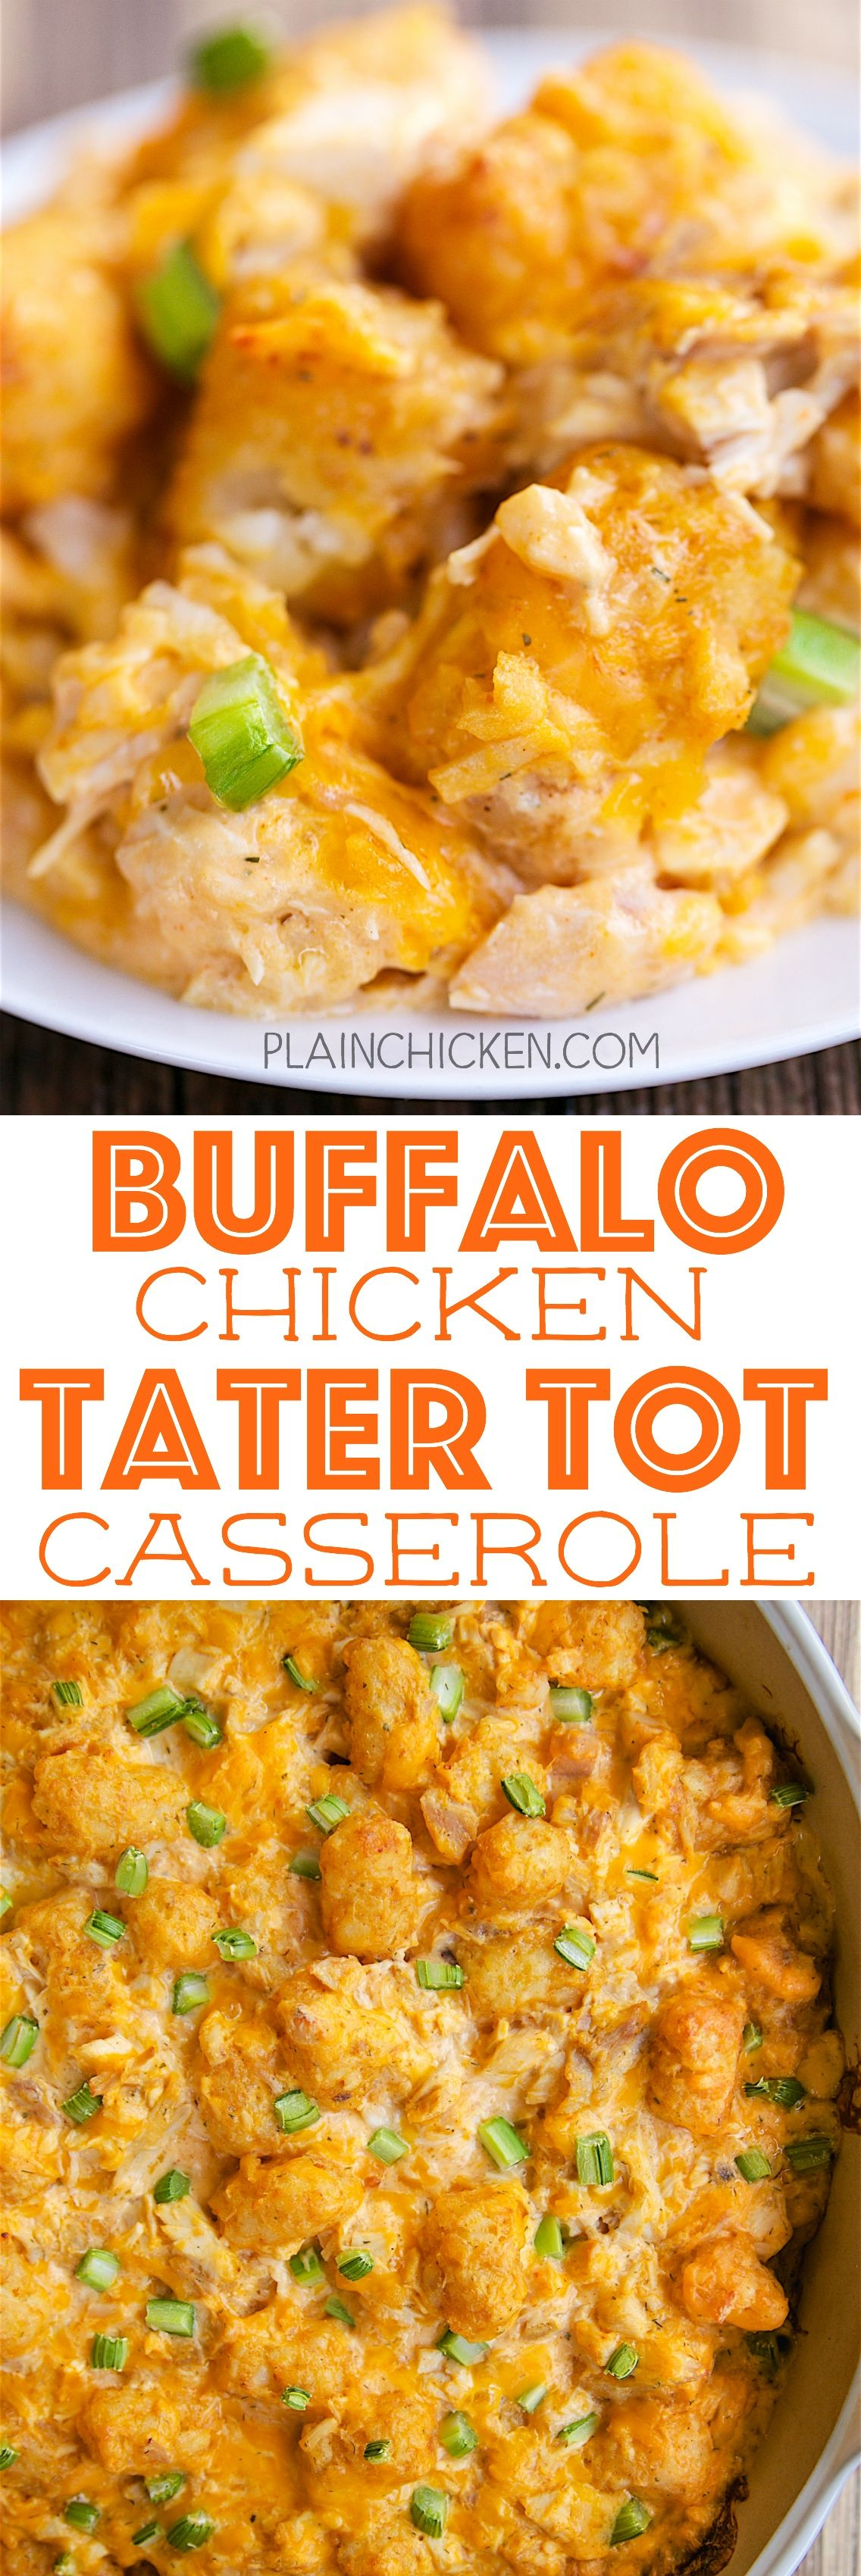 Buffalo Chicken Tater Tot Casserole So Good Great Casserole For A Potluck Or Watching Football Ever Chicken Tater Tot Casserole Food Cream Of Chicken Soup